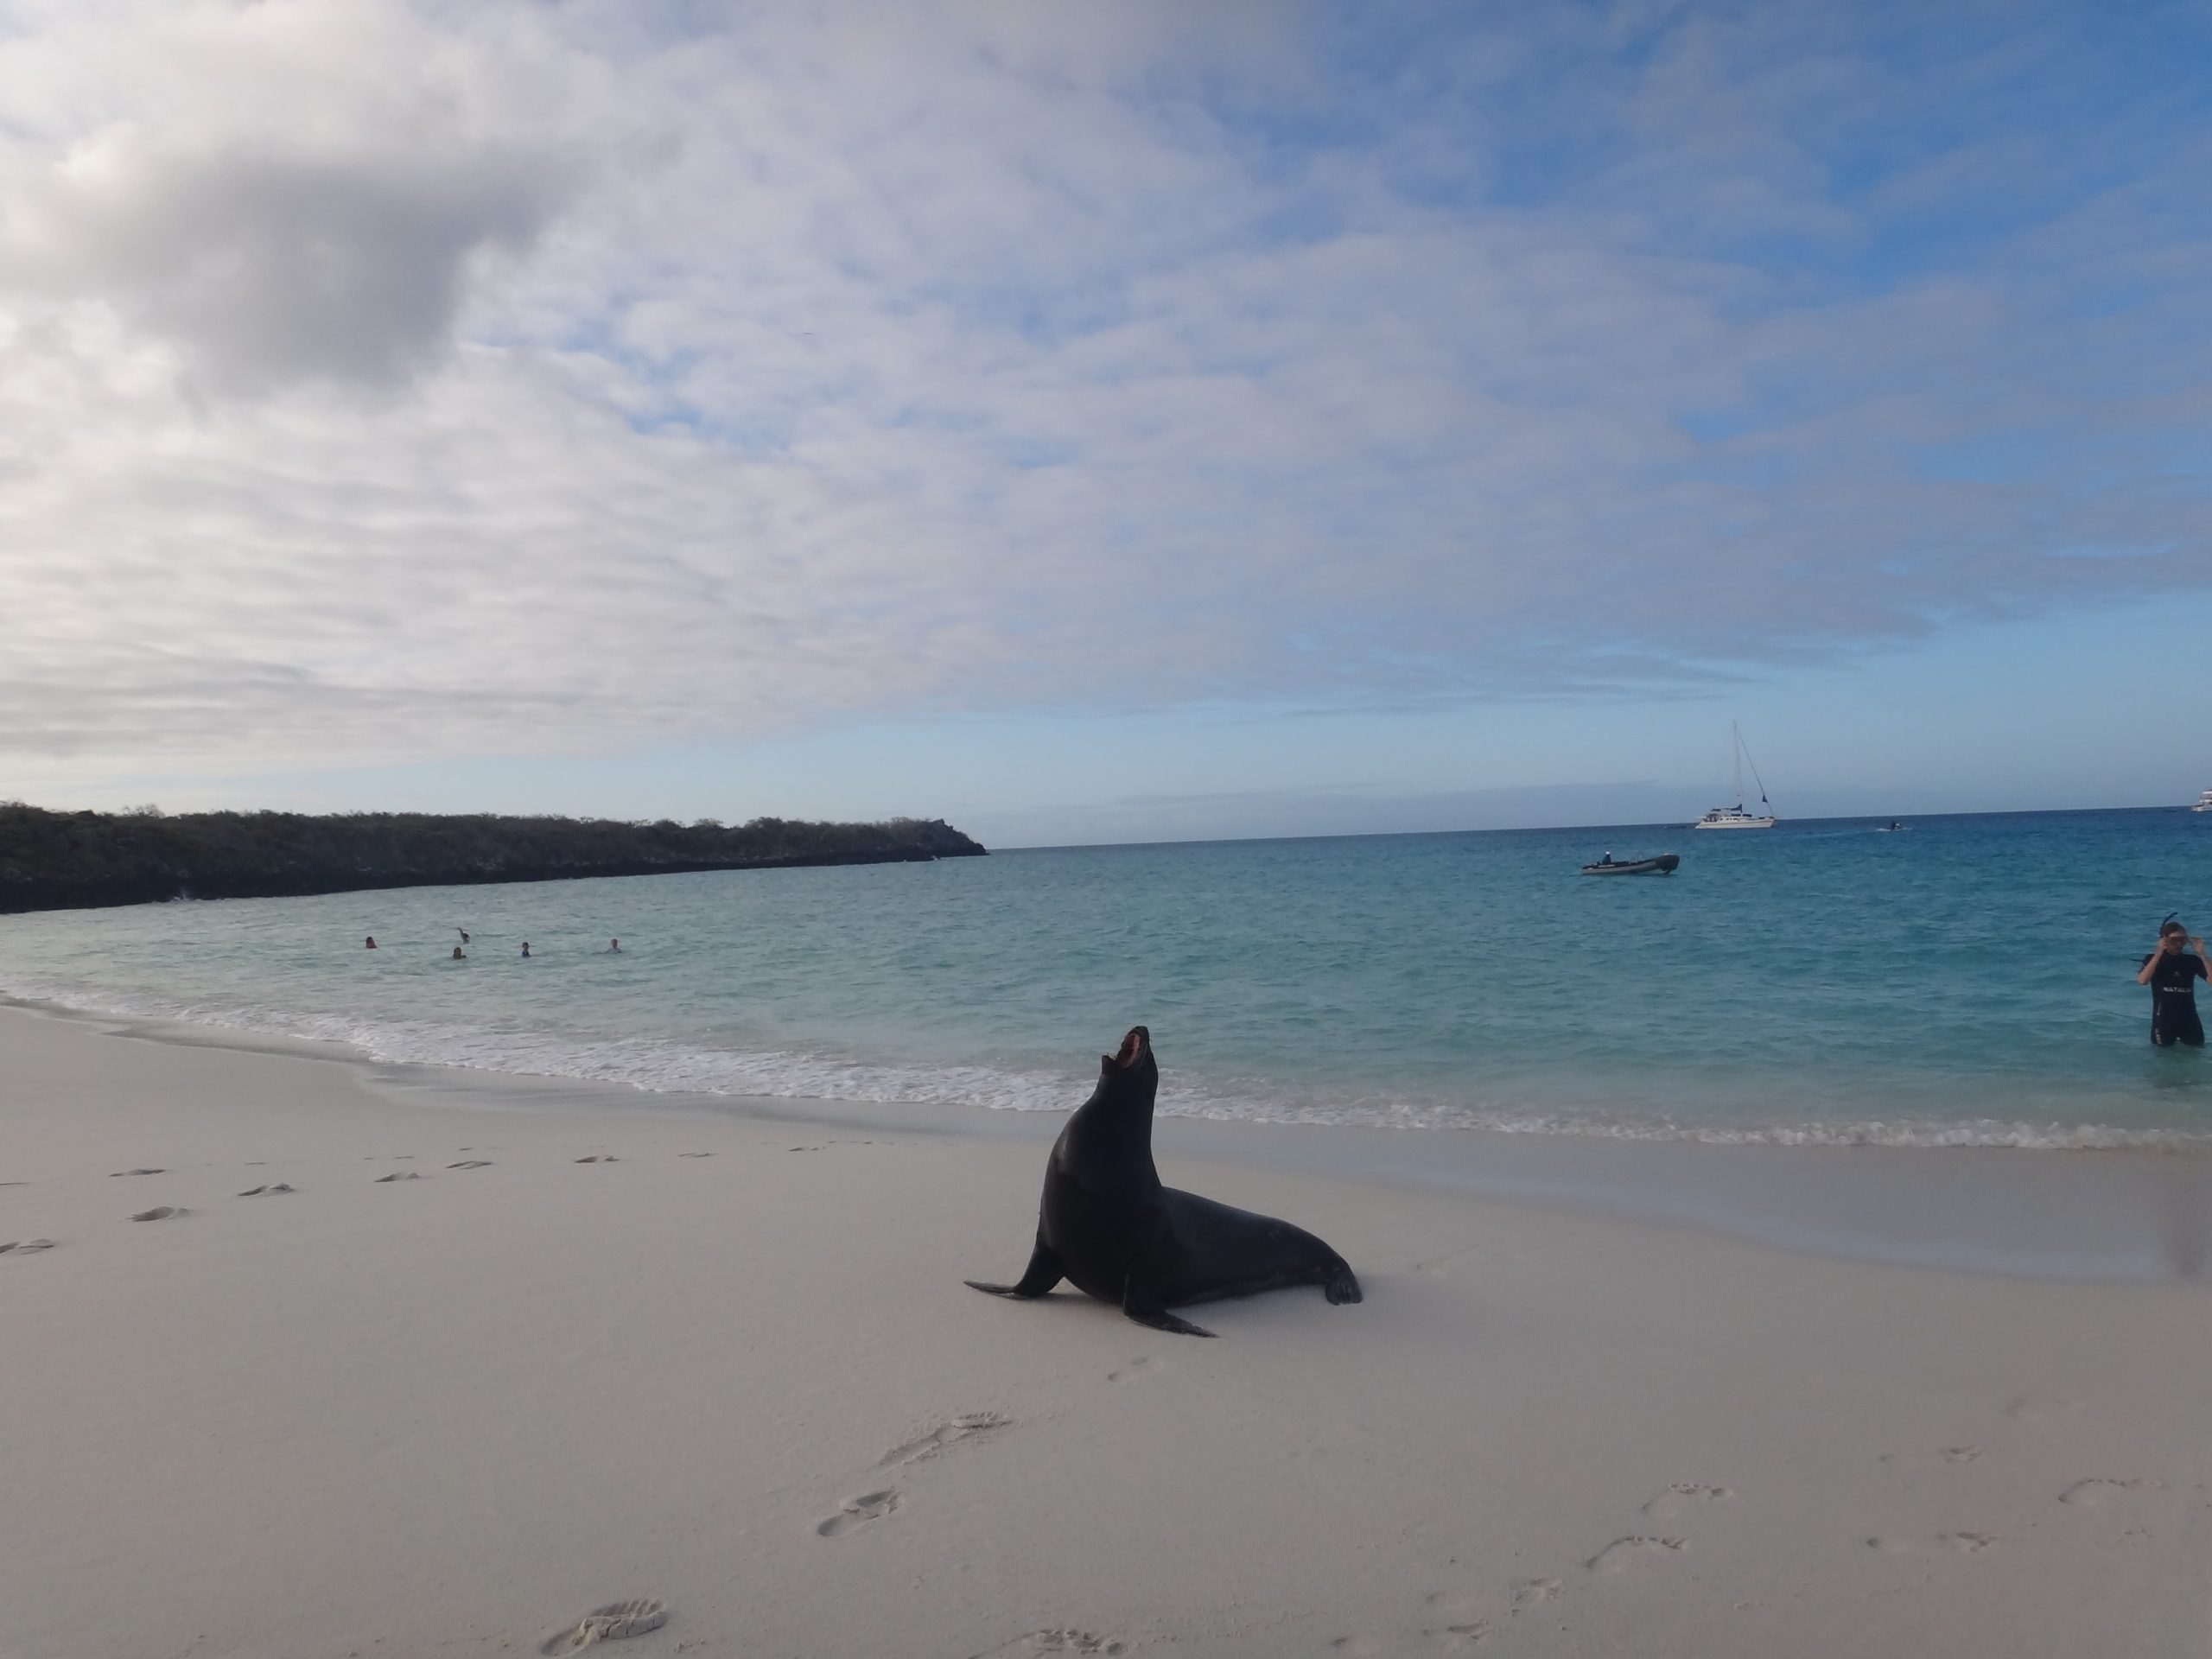 Top 5 things to see in the Galapagos Islands, Ecuador